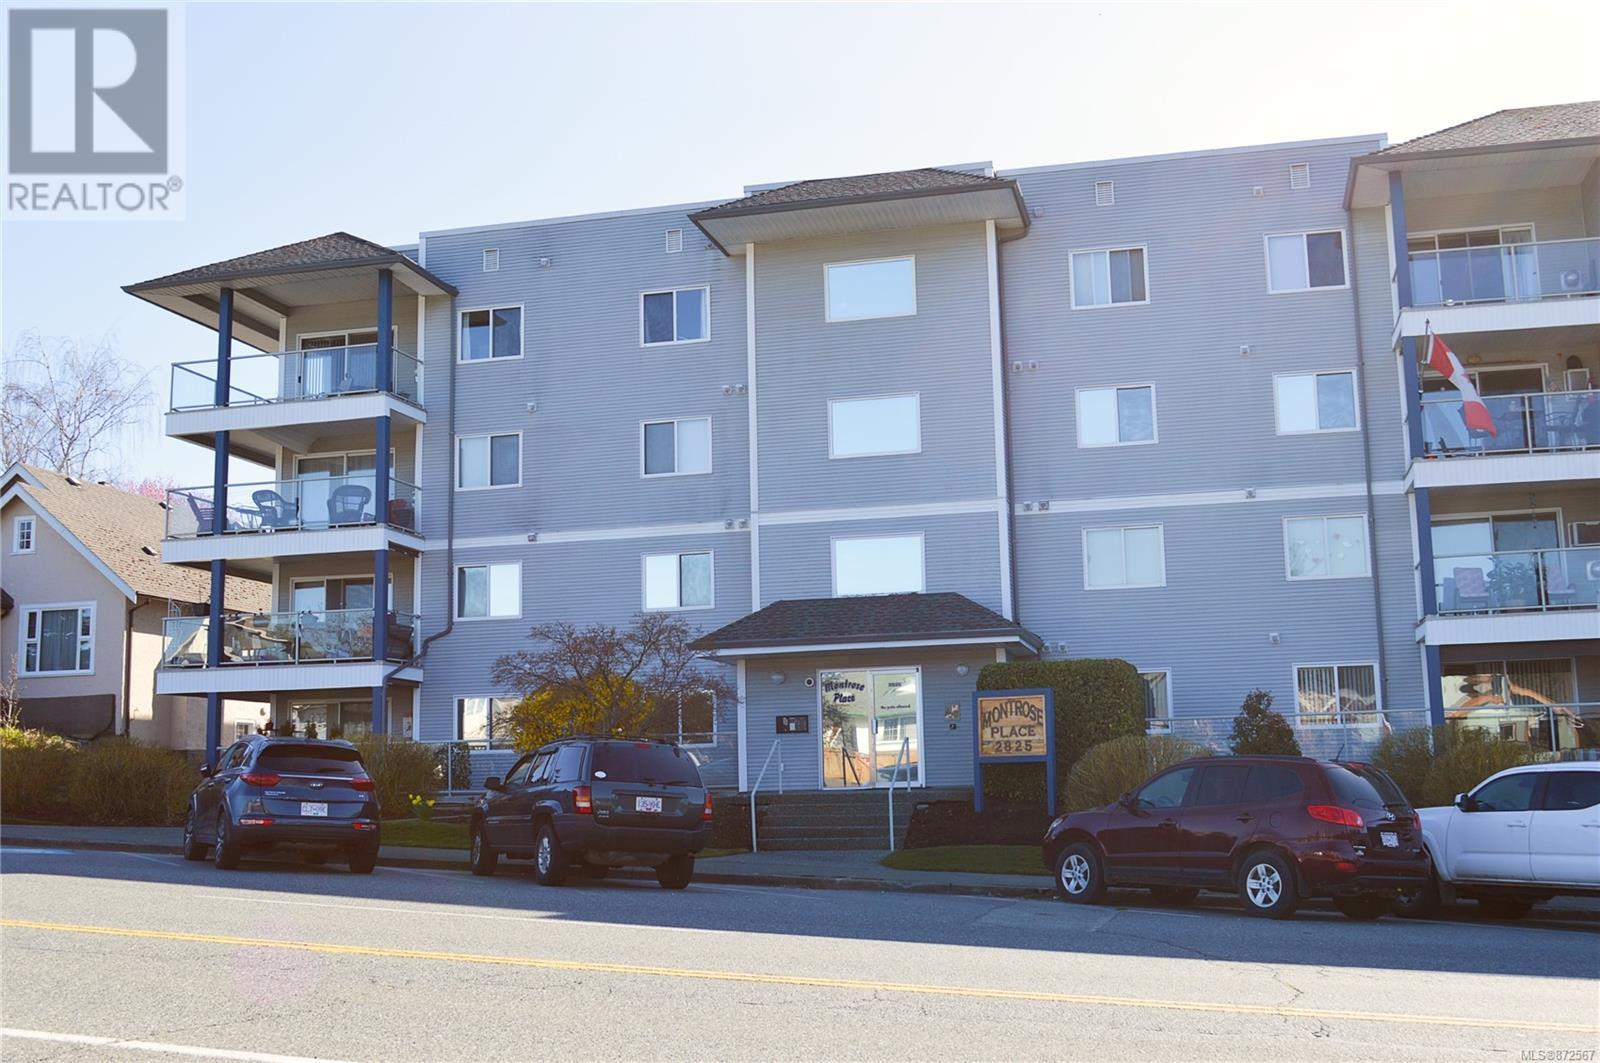 403 - 2825 3rd Ave